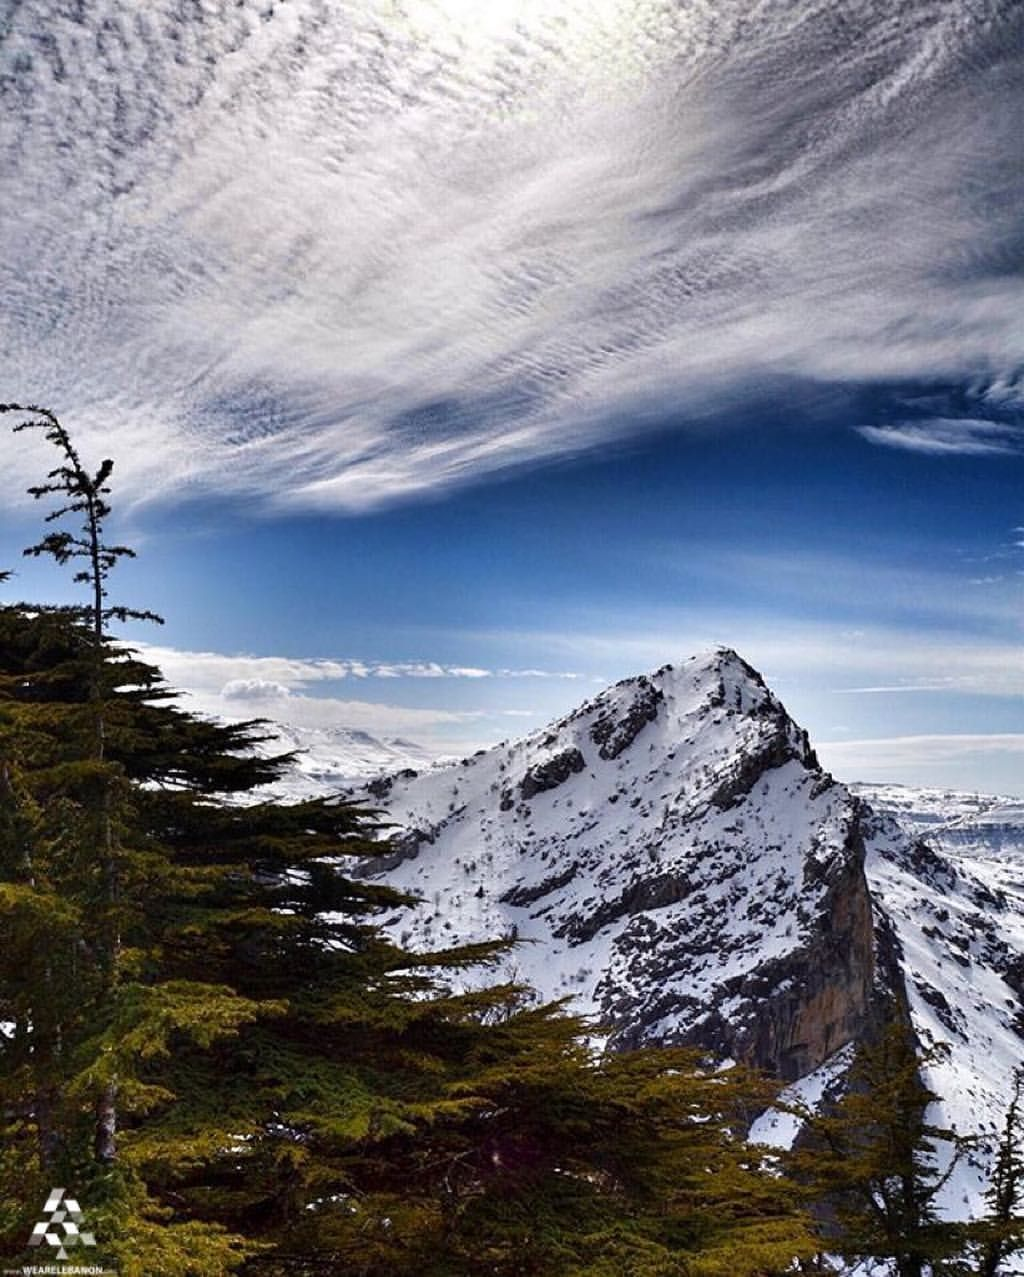 Have beautiful Morning from #the stunning Tannourine ❄️ By @slhclt #WeAreLebanon  #Lebanon #WeAreLebanon